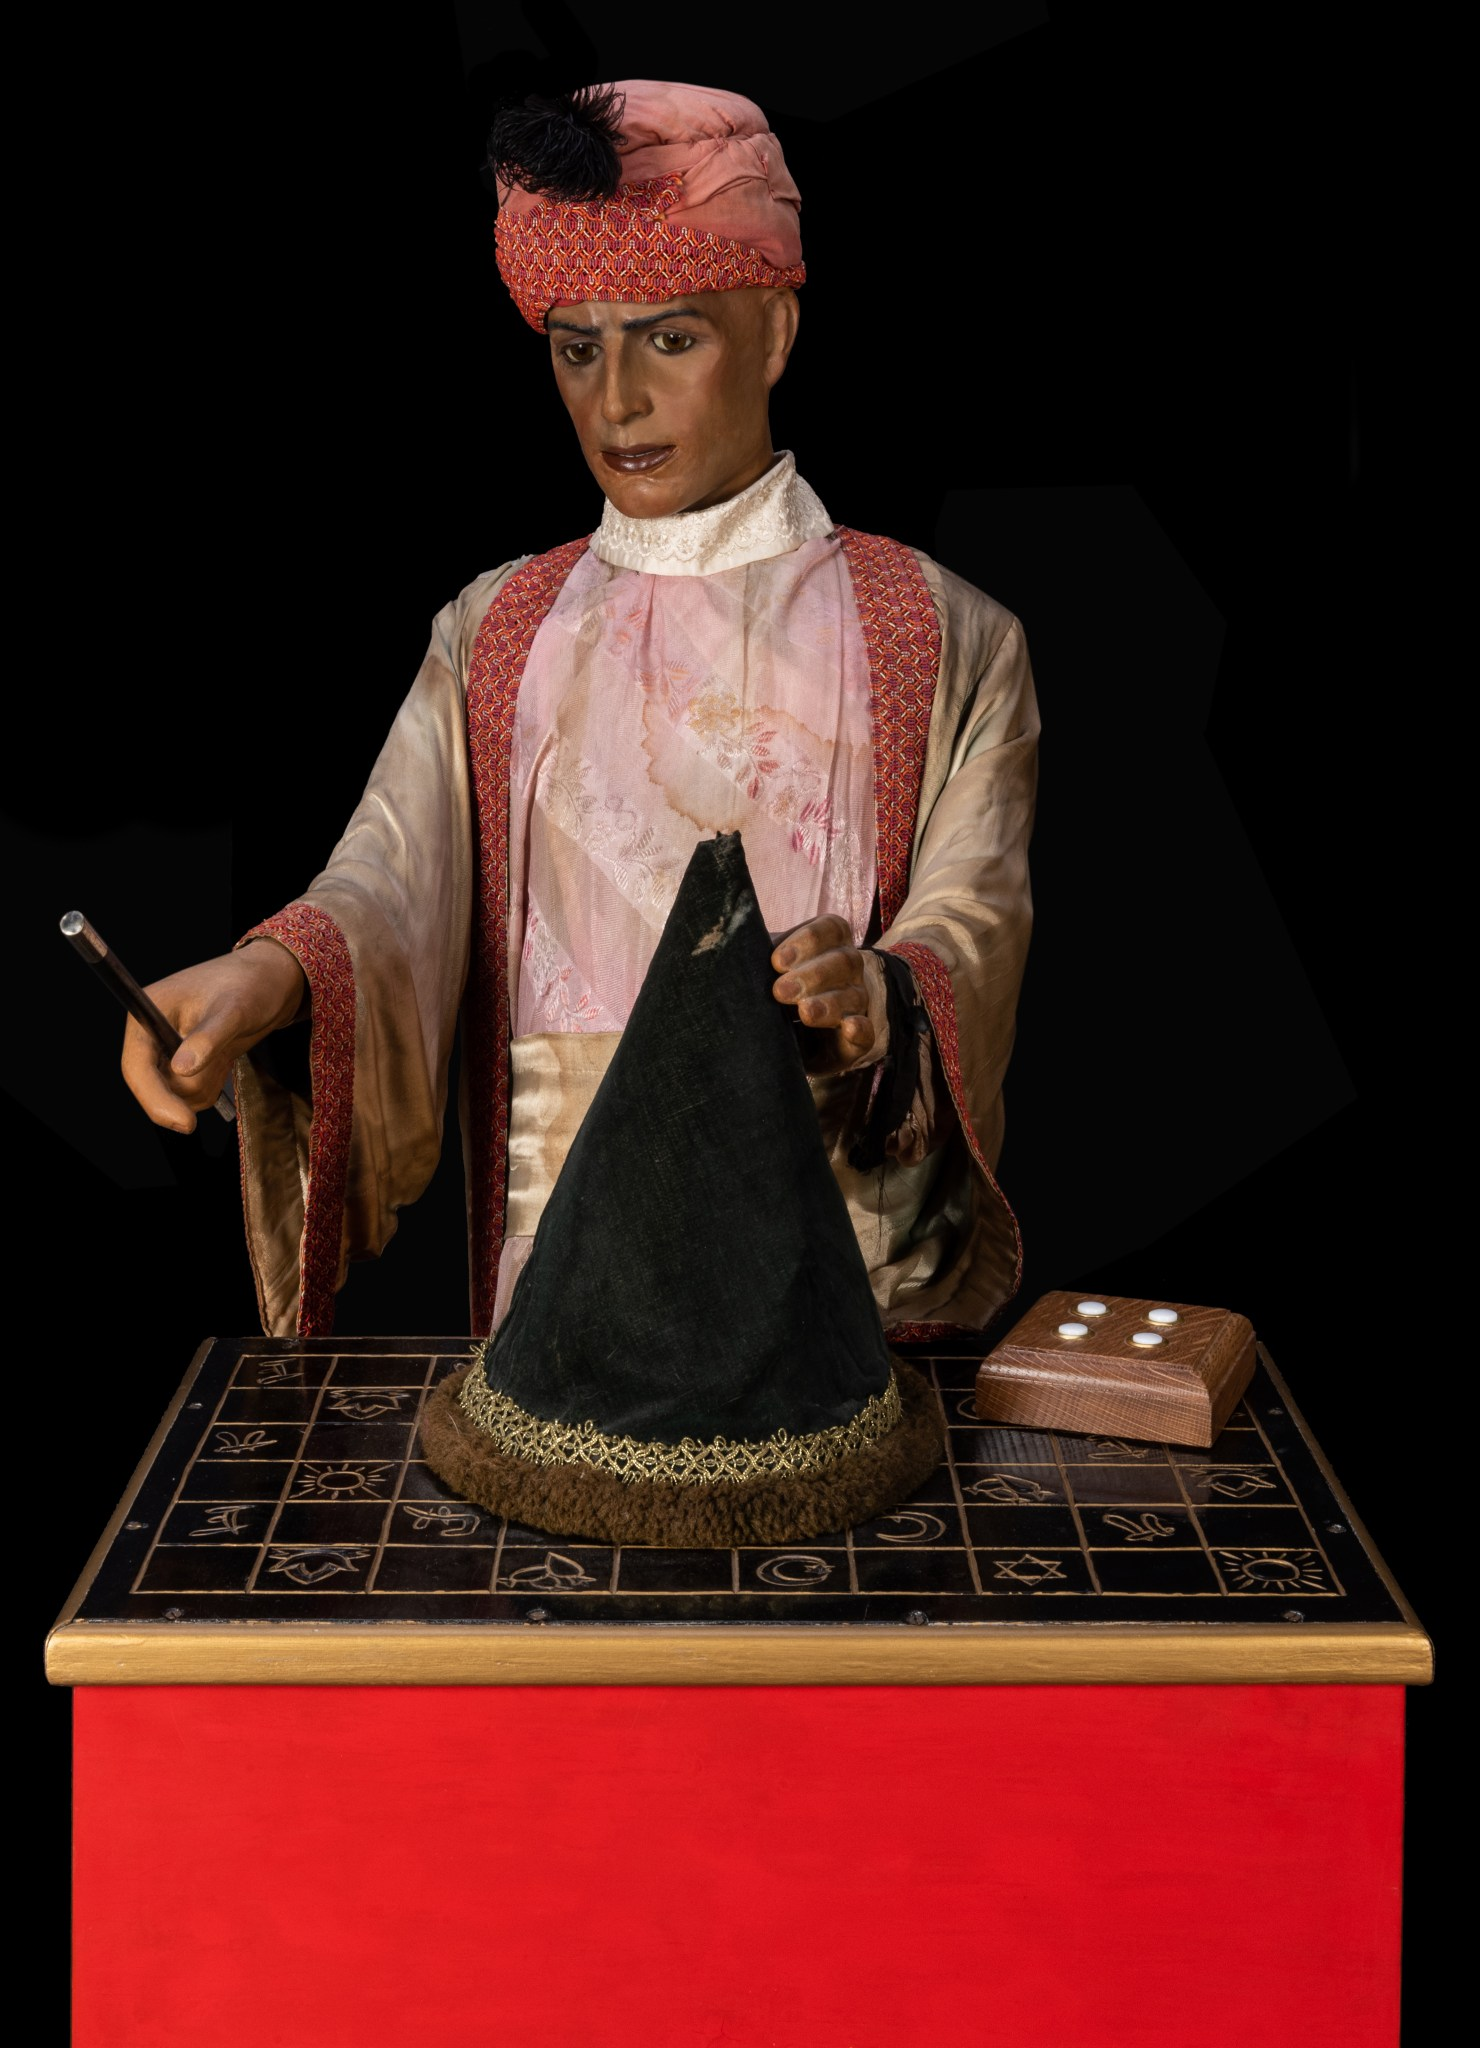 The magician automaton from Sleuth, shown head-on, about to lift a wizard's cap from a table carved with mysterious symbols.